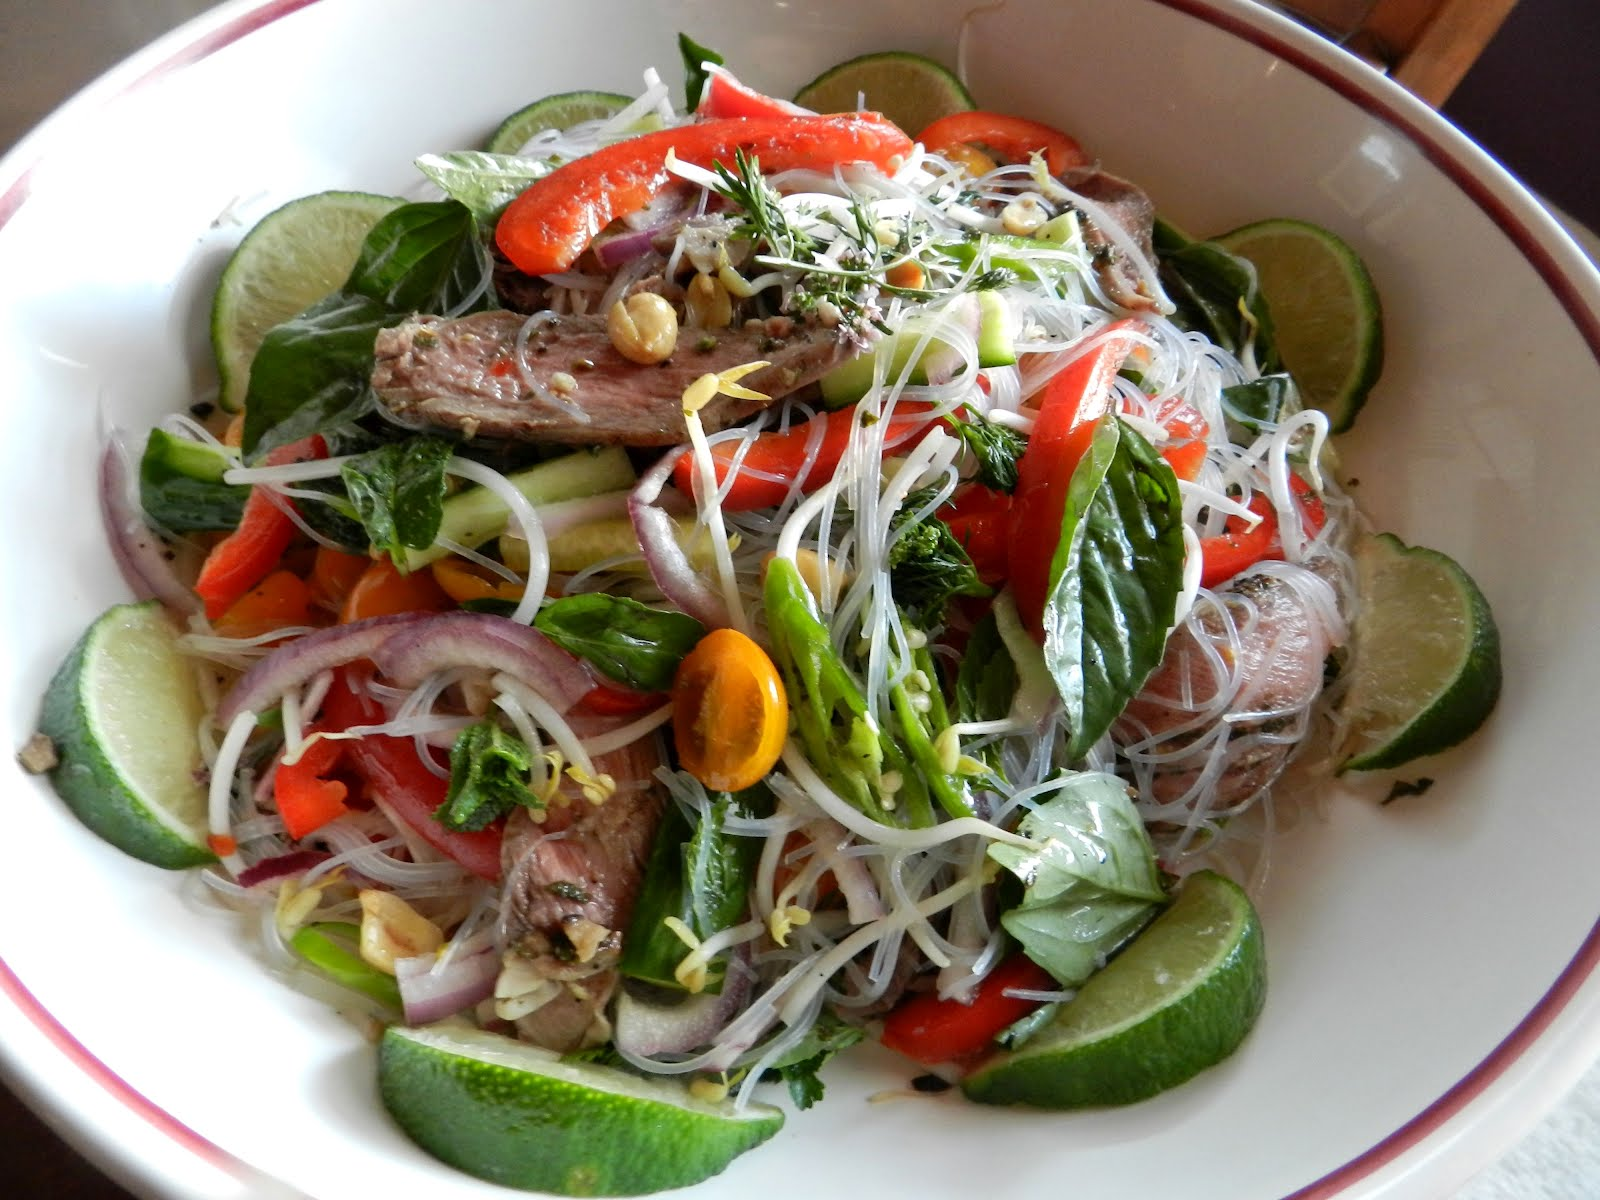 Mangia e Beve: Thai-Style Cellophane Noodle Salad with Lamb